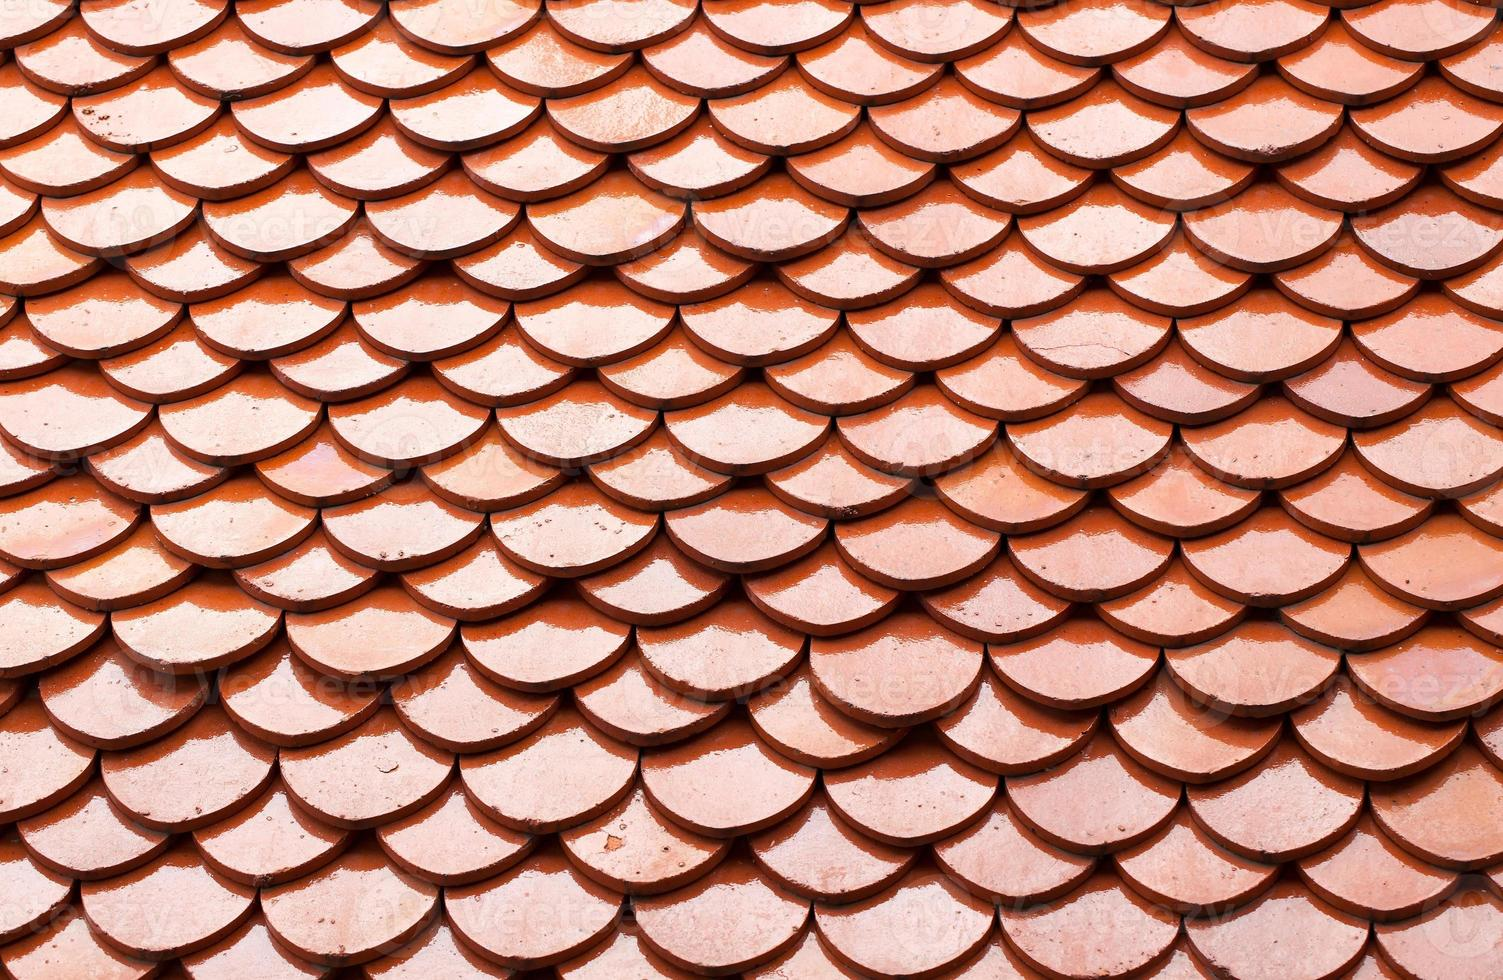 Red tile roof photo